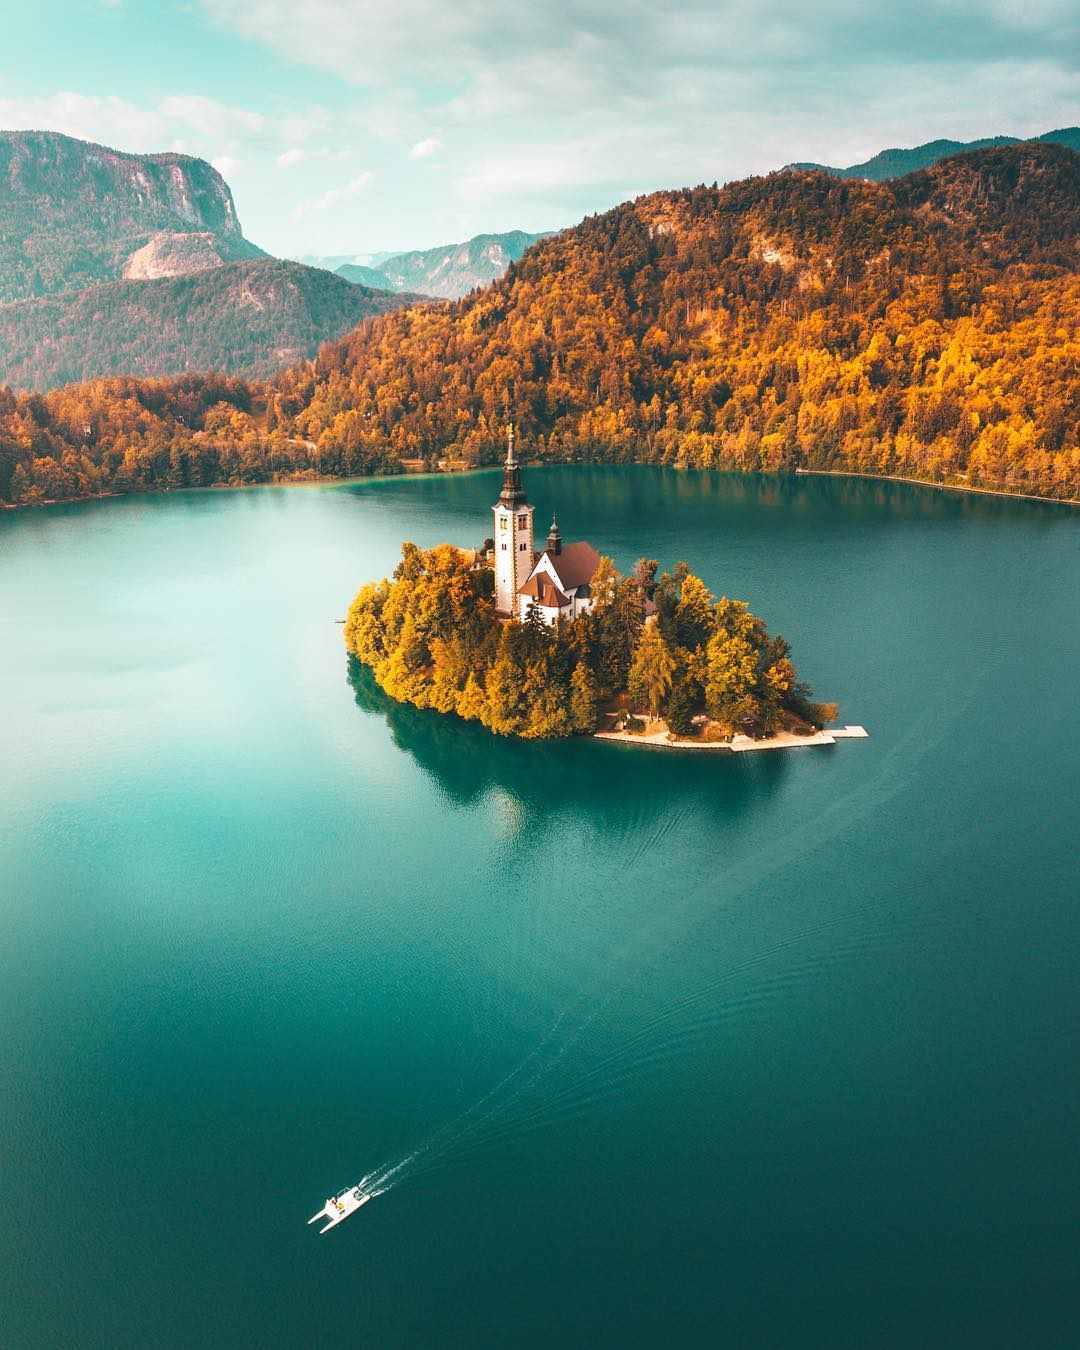 THE WONDERFUL LAKE BLED  This beautiful Alpine lake with the only island in Slovenia has been a world - known paradise for centuries. Impressing visitors with its natural charm all over again, wealth of legend, and special powers to restore well-being.  Relax your mind, calm your spirit and renew your travel experiences at this beautiful spot nature has given to us. Thanks @yantastic for sharing your photo with #ifeelsLOVEnia.